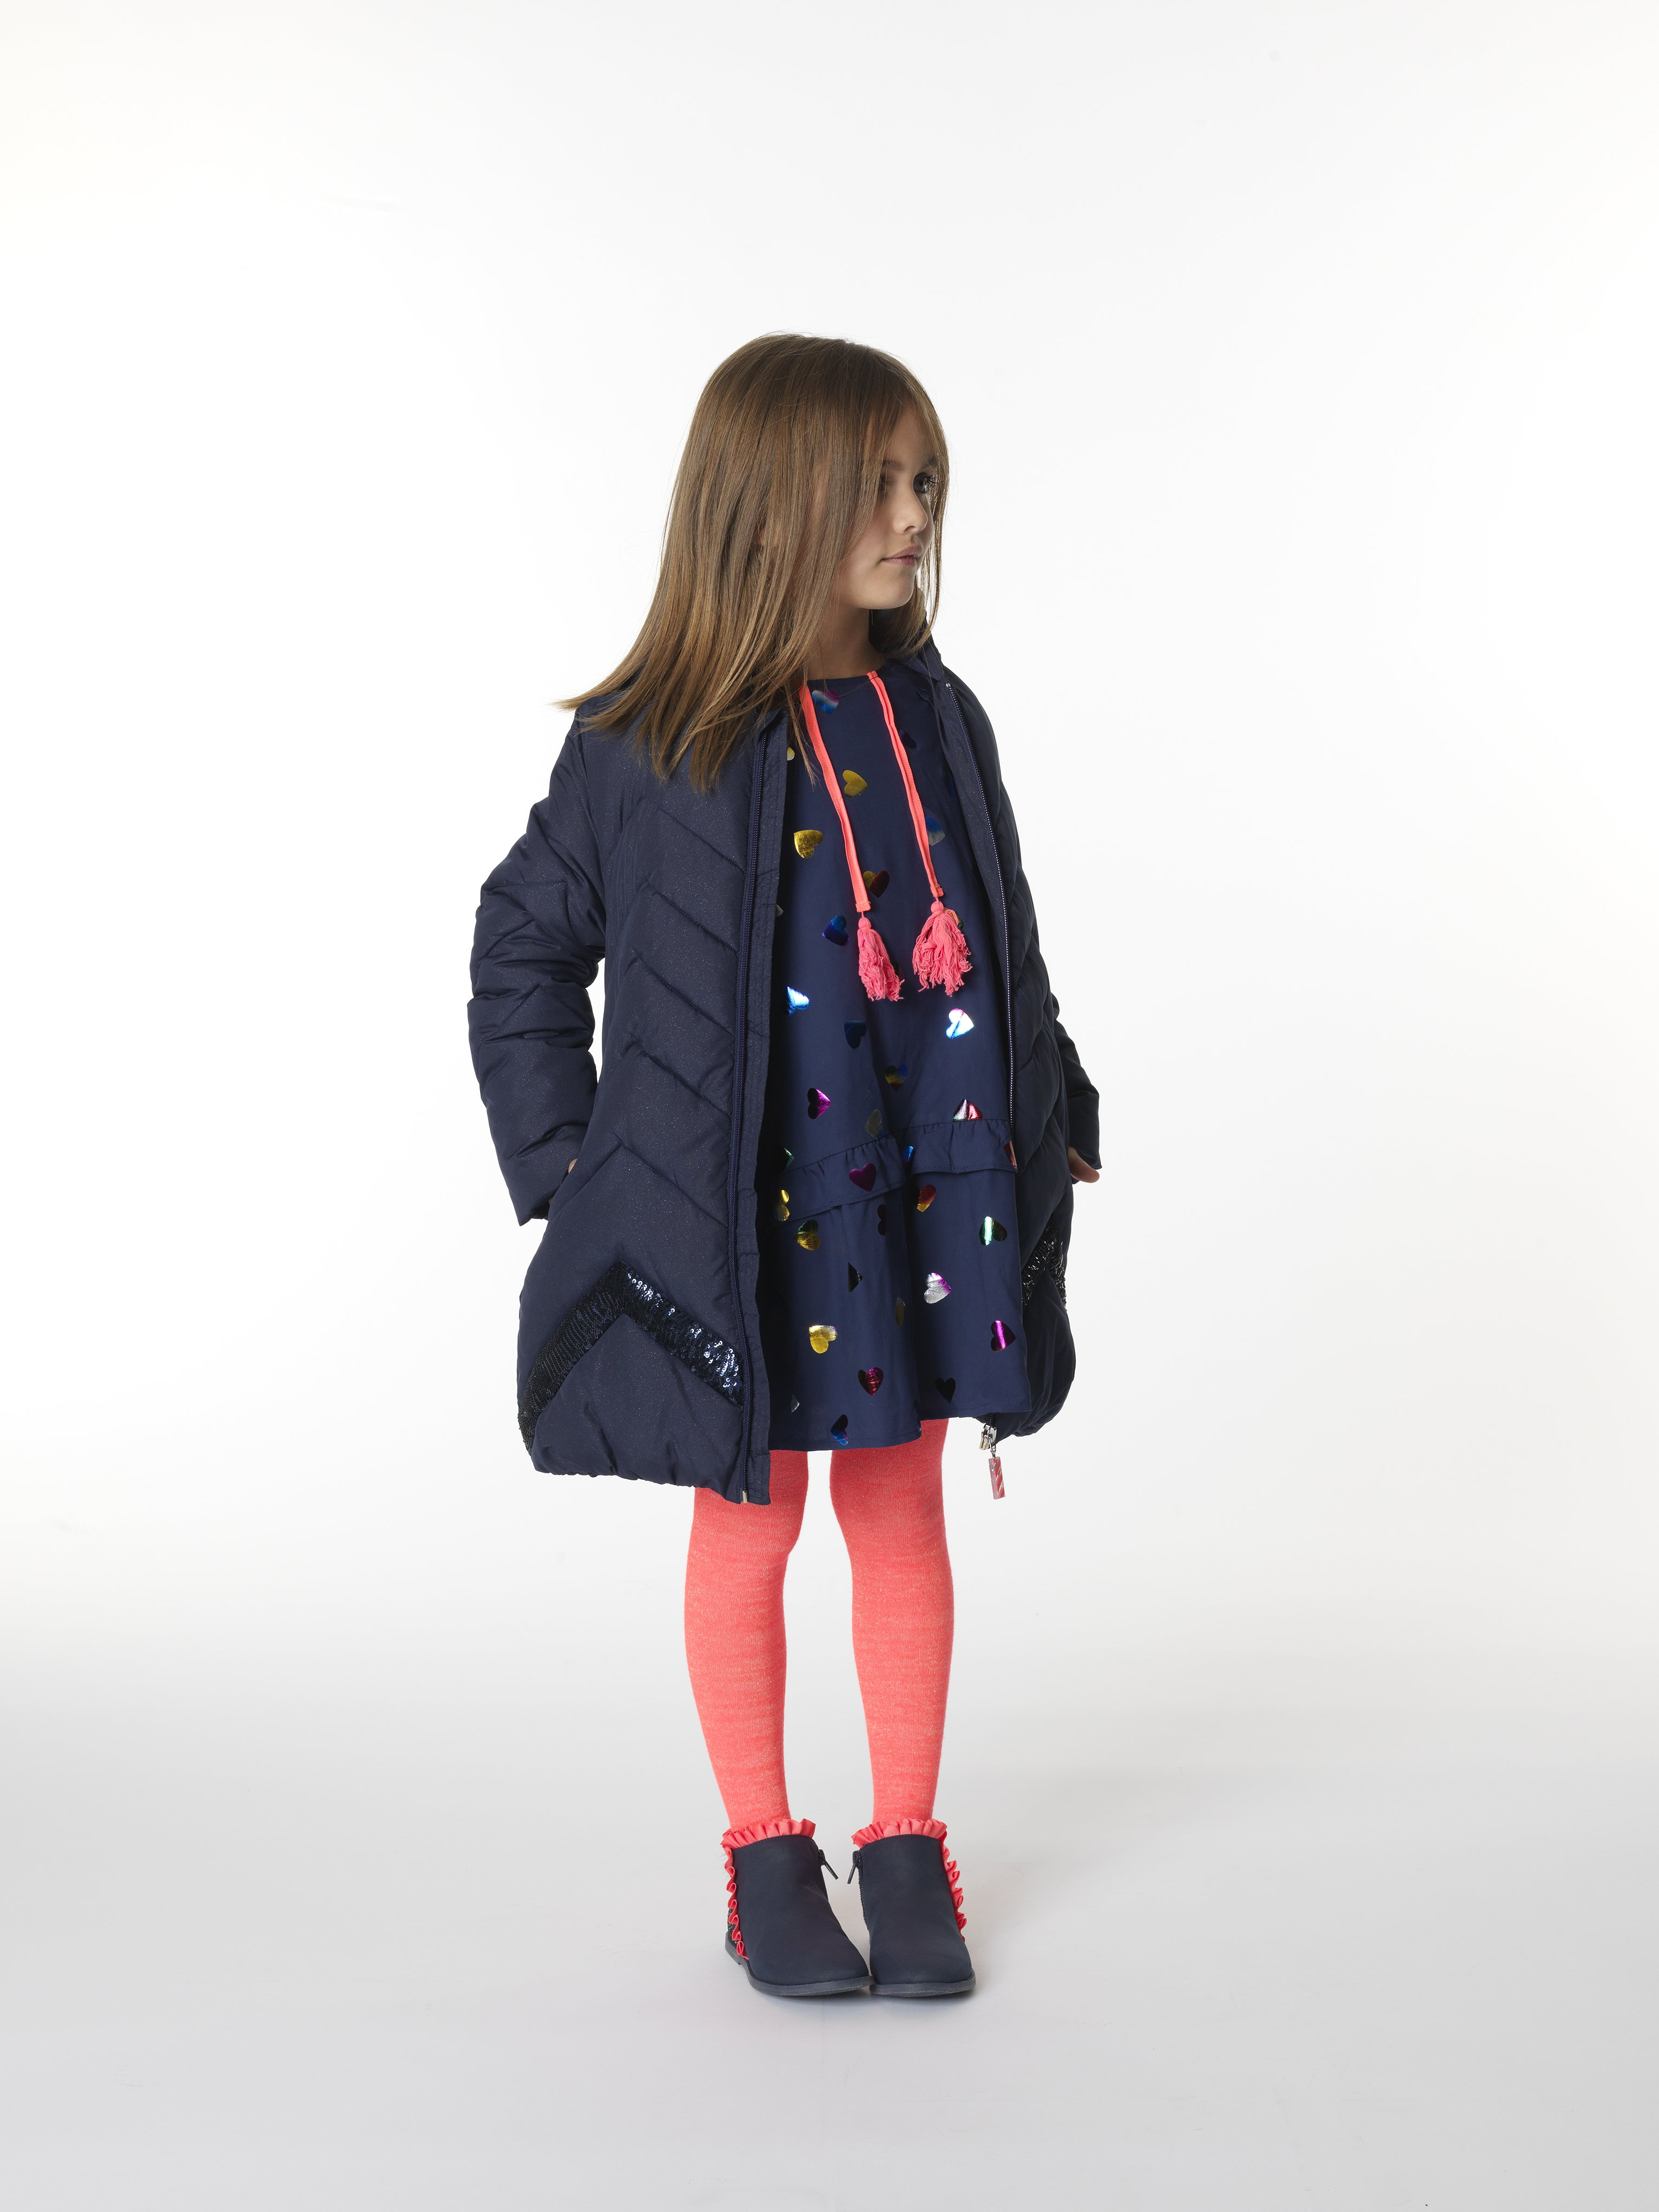 Billie Blush Girls Navy Glitter Coat